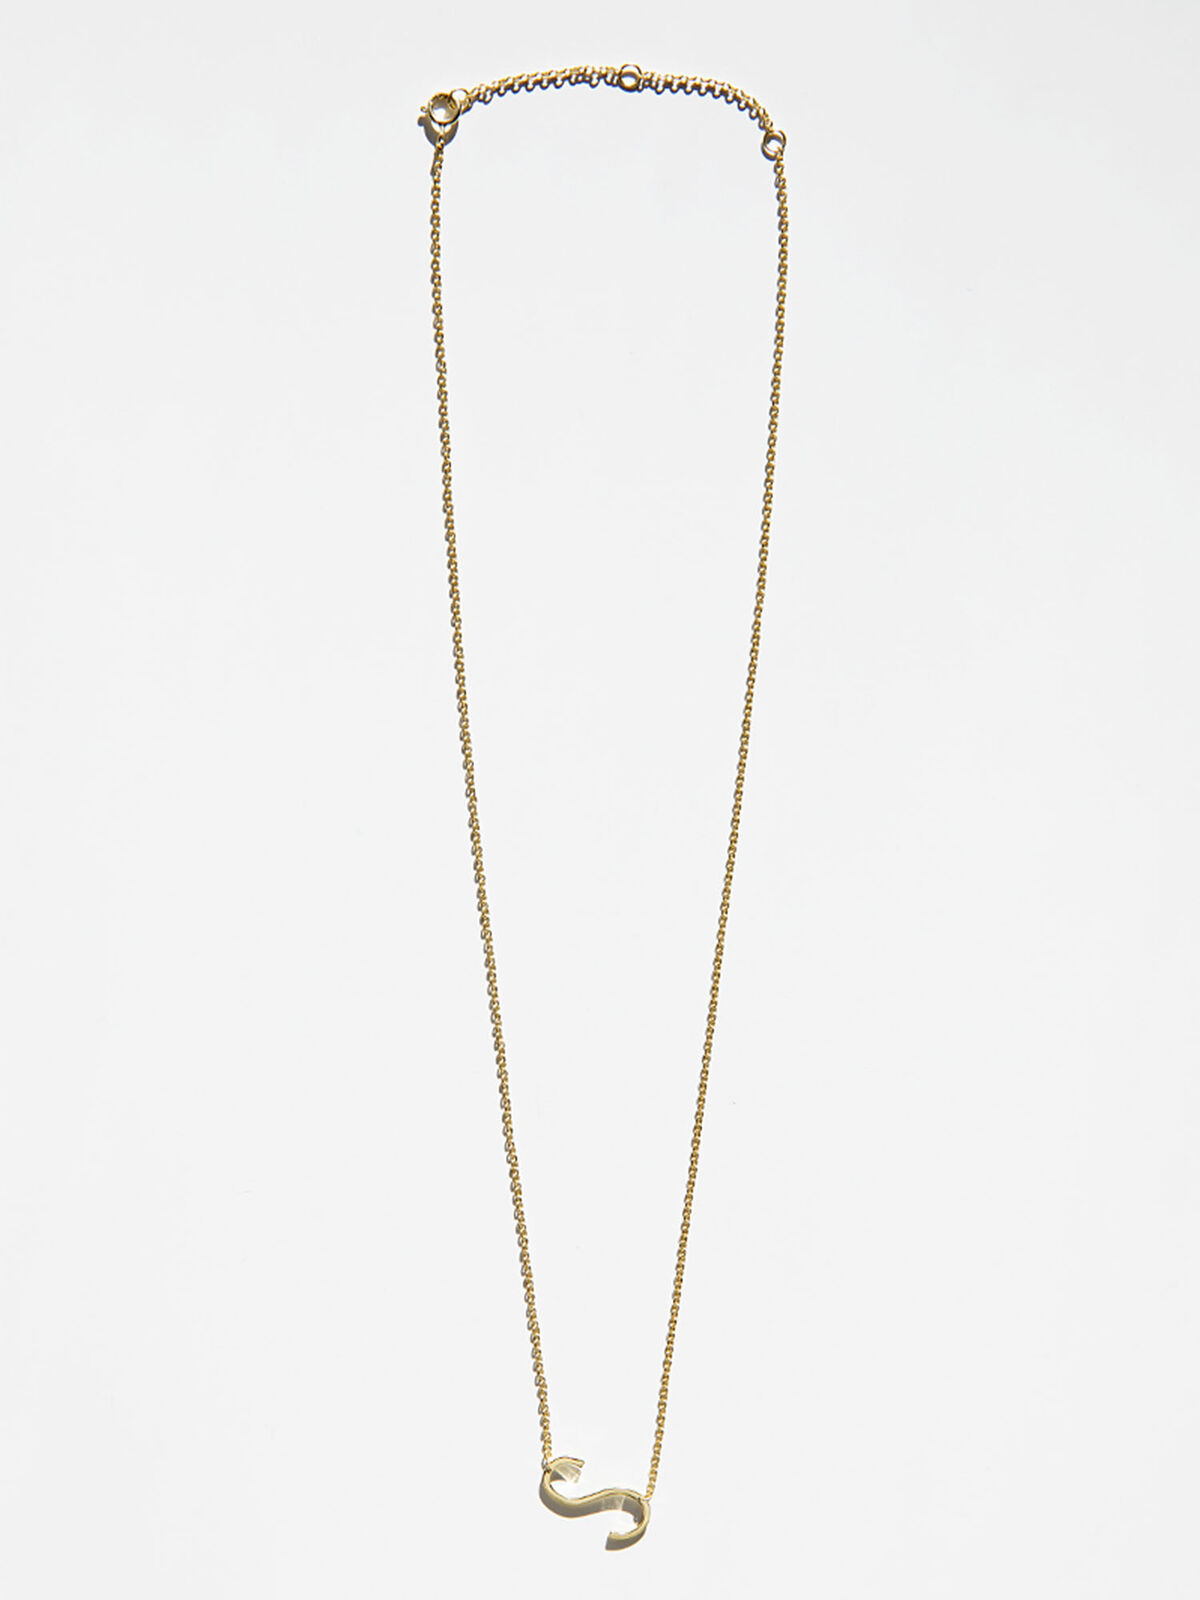 Marlyn Schiff Initial Necklace